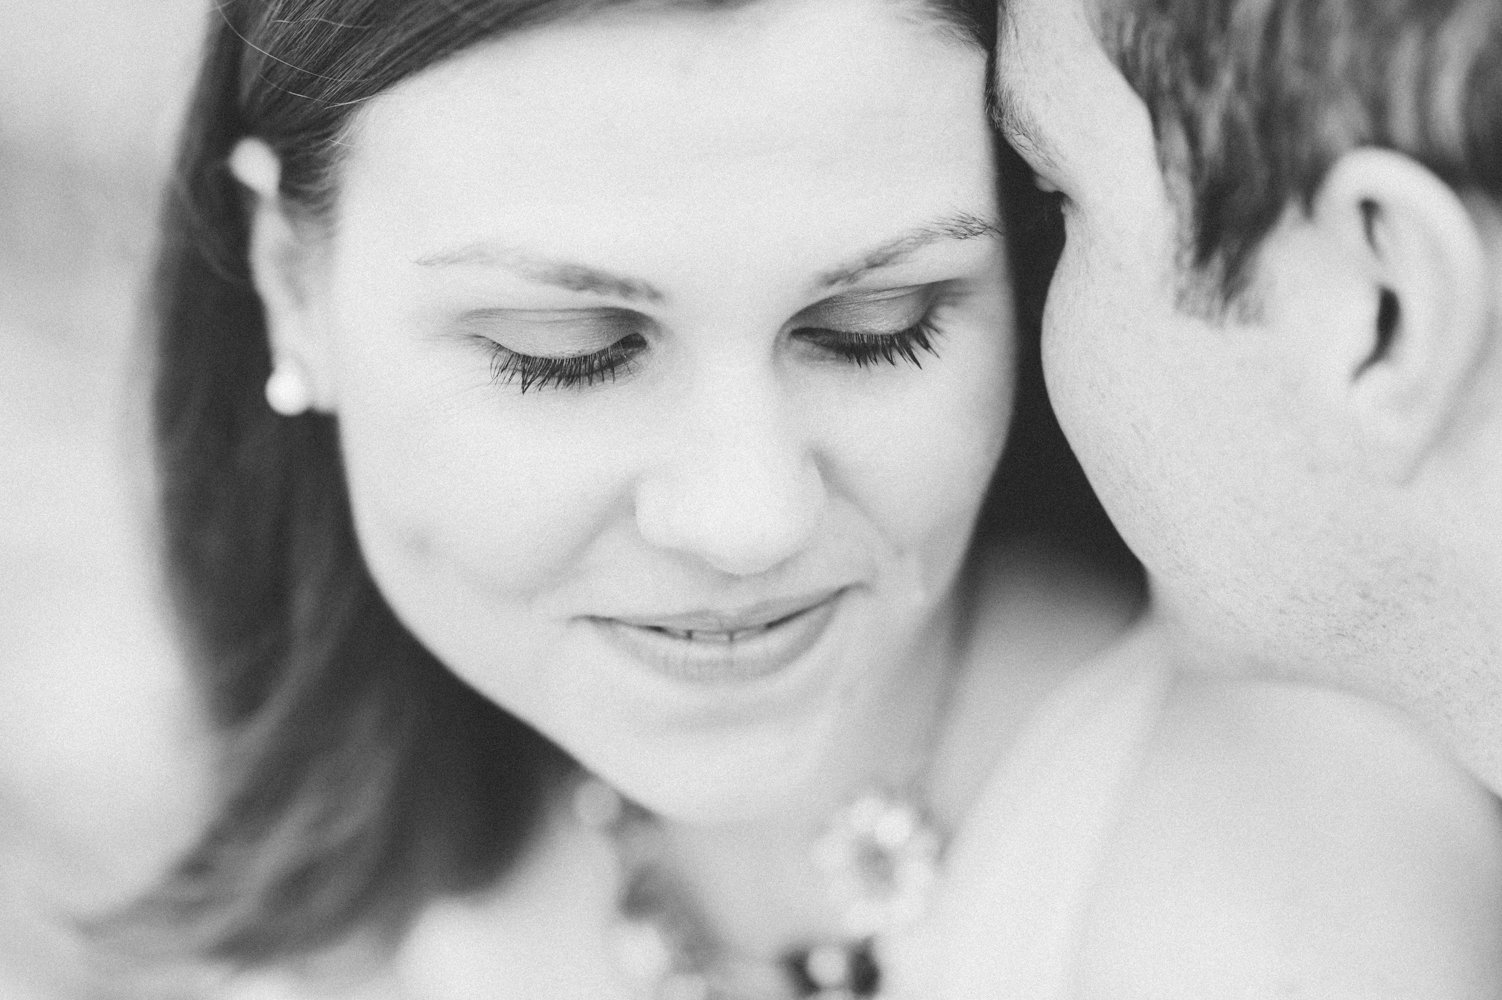 engagement-portraits-christina-forbes-photography-39